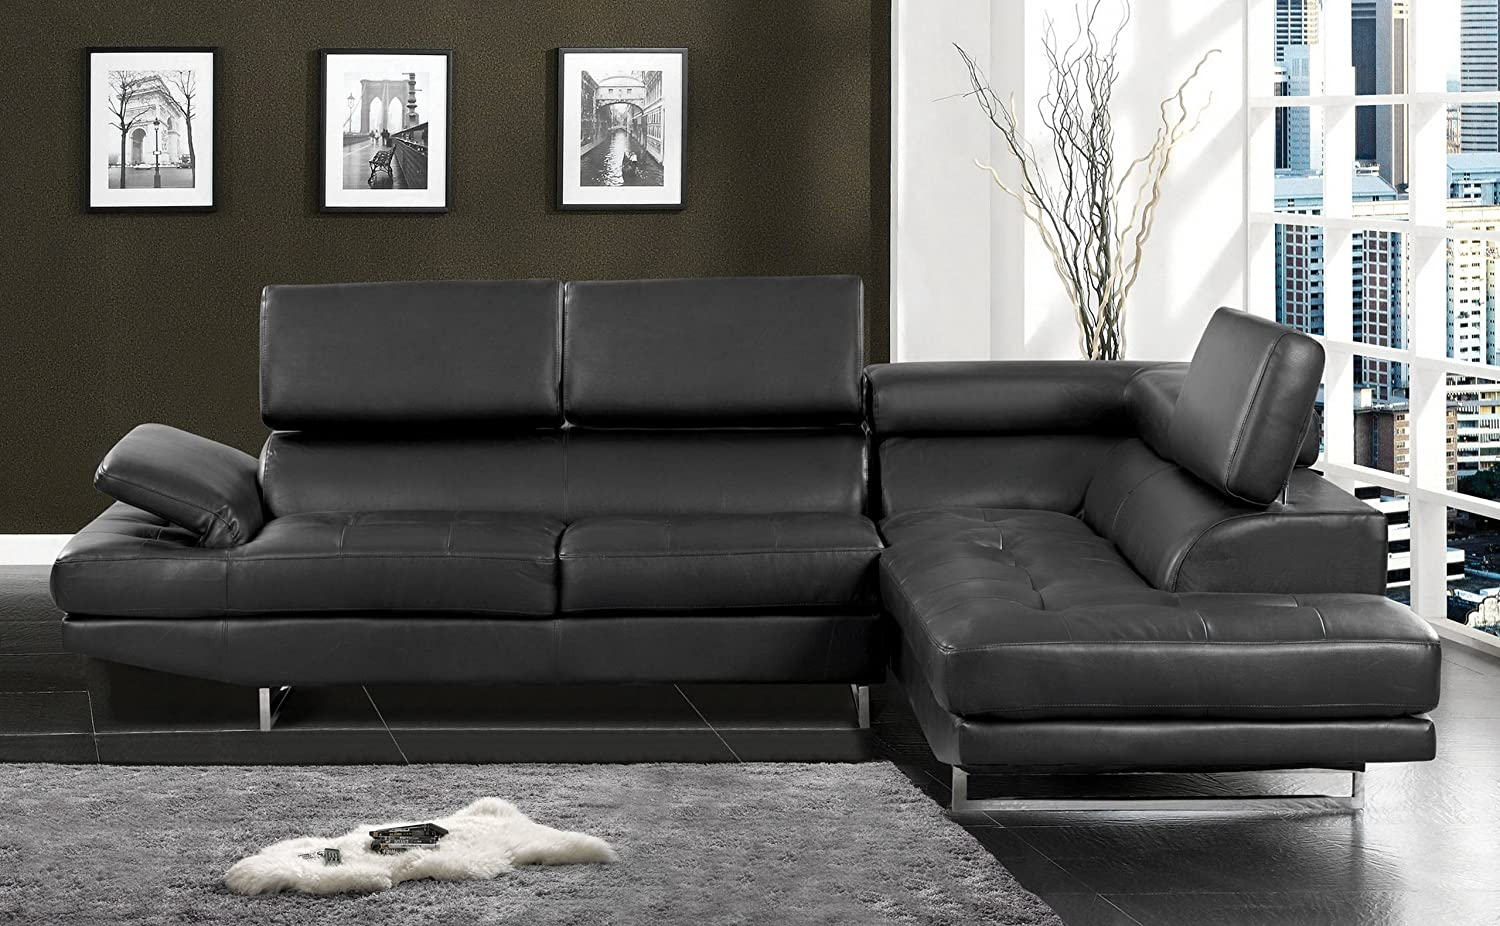 Amazon.com: Furniture Of America Keen Bonded Leather Sectional Sofa With  Adjustable Headrests, Black: Kitchen U0026 Dining